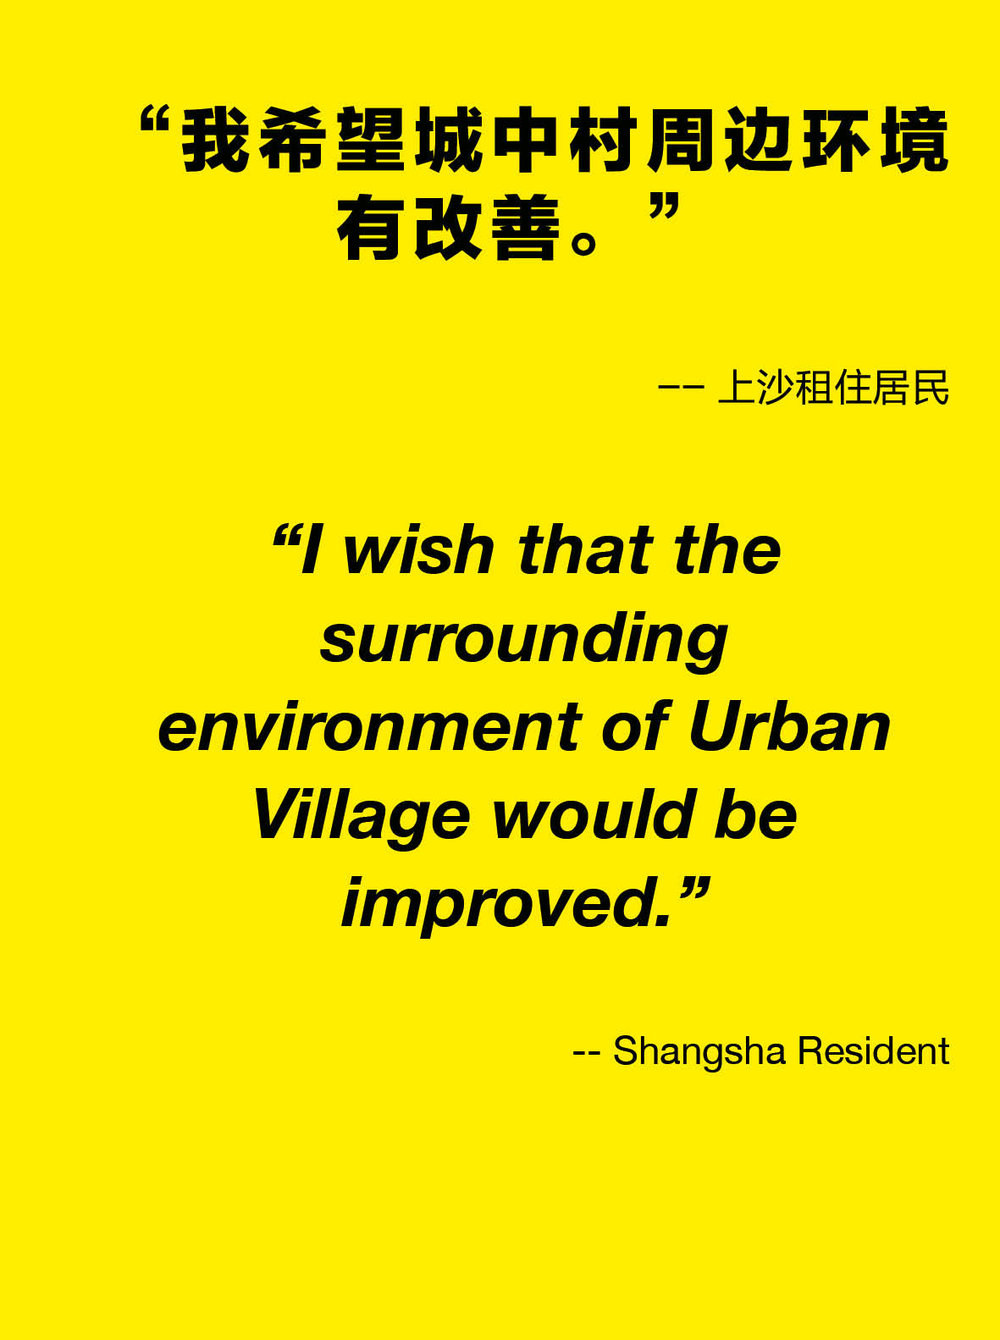 20180106_Shangsha Quotes test033.jpg